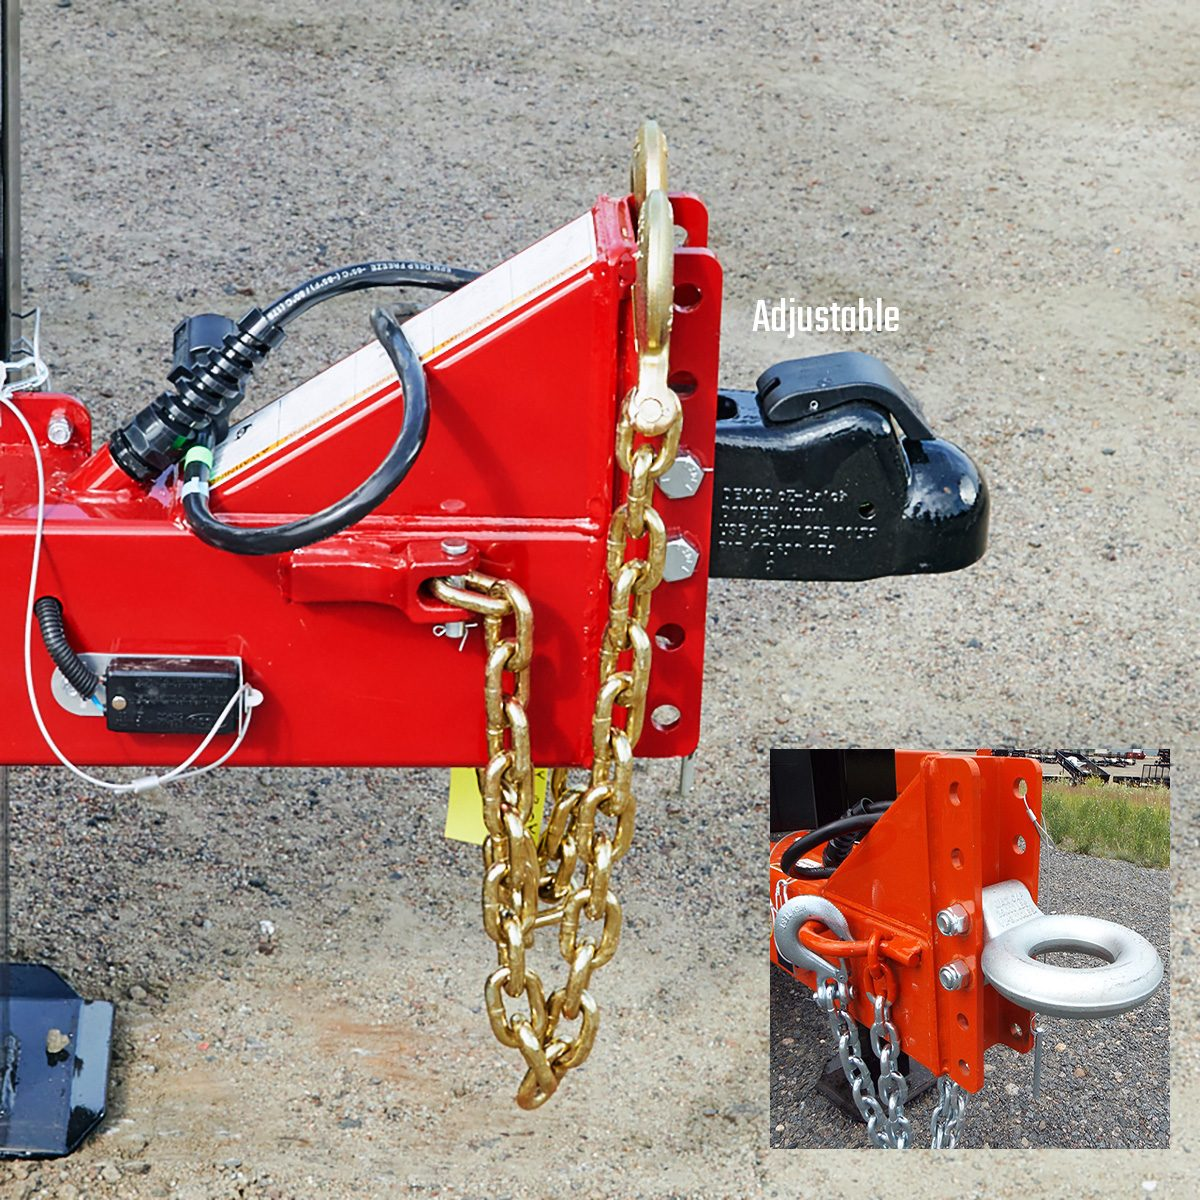 Couplers: Adjustable and Pintle | Construction Pro Tips